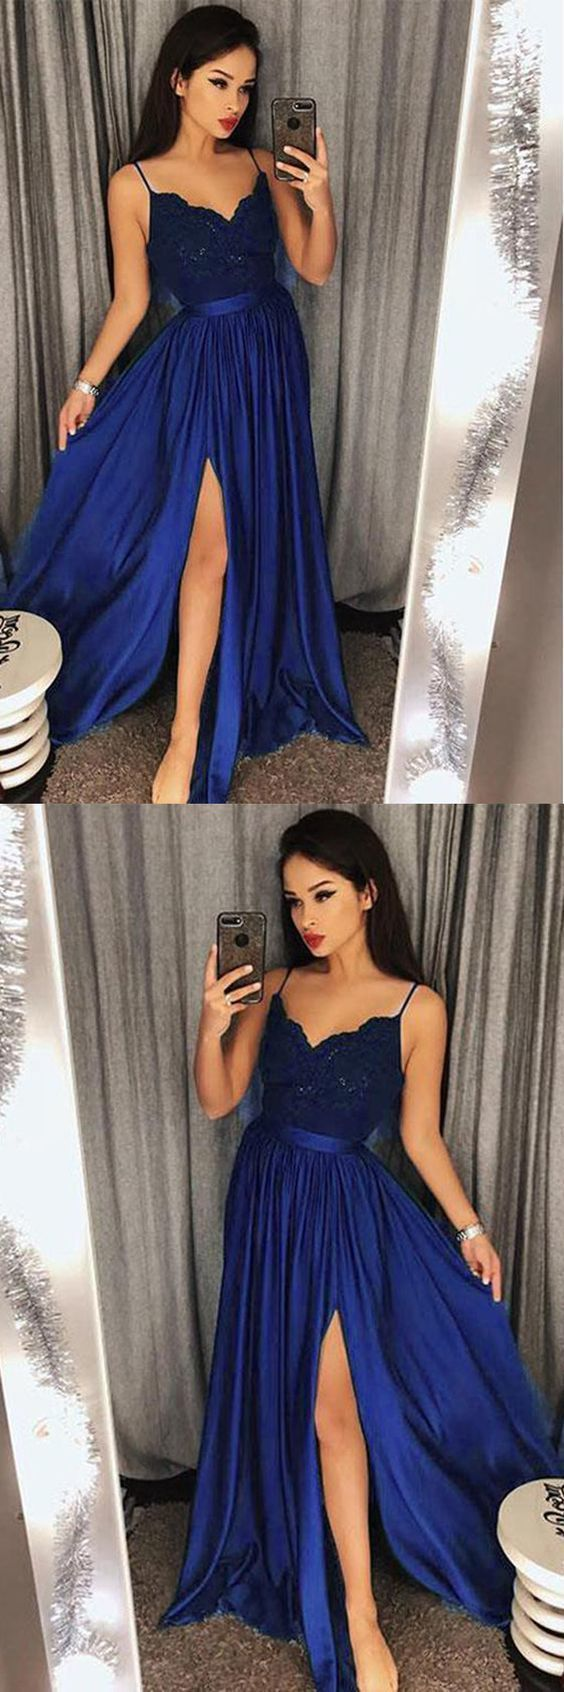 c39f383bb037 Sexy Navy Blue V-Neck Lace Bodice Prom/Evening by formalgowns on